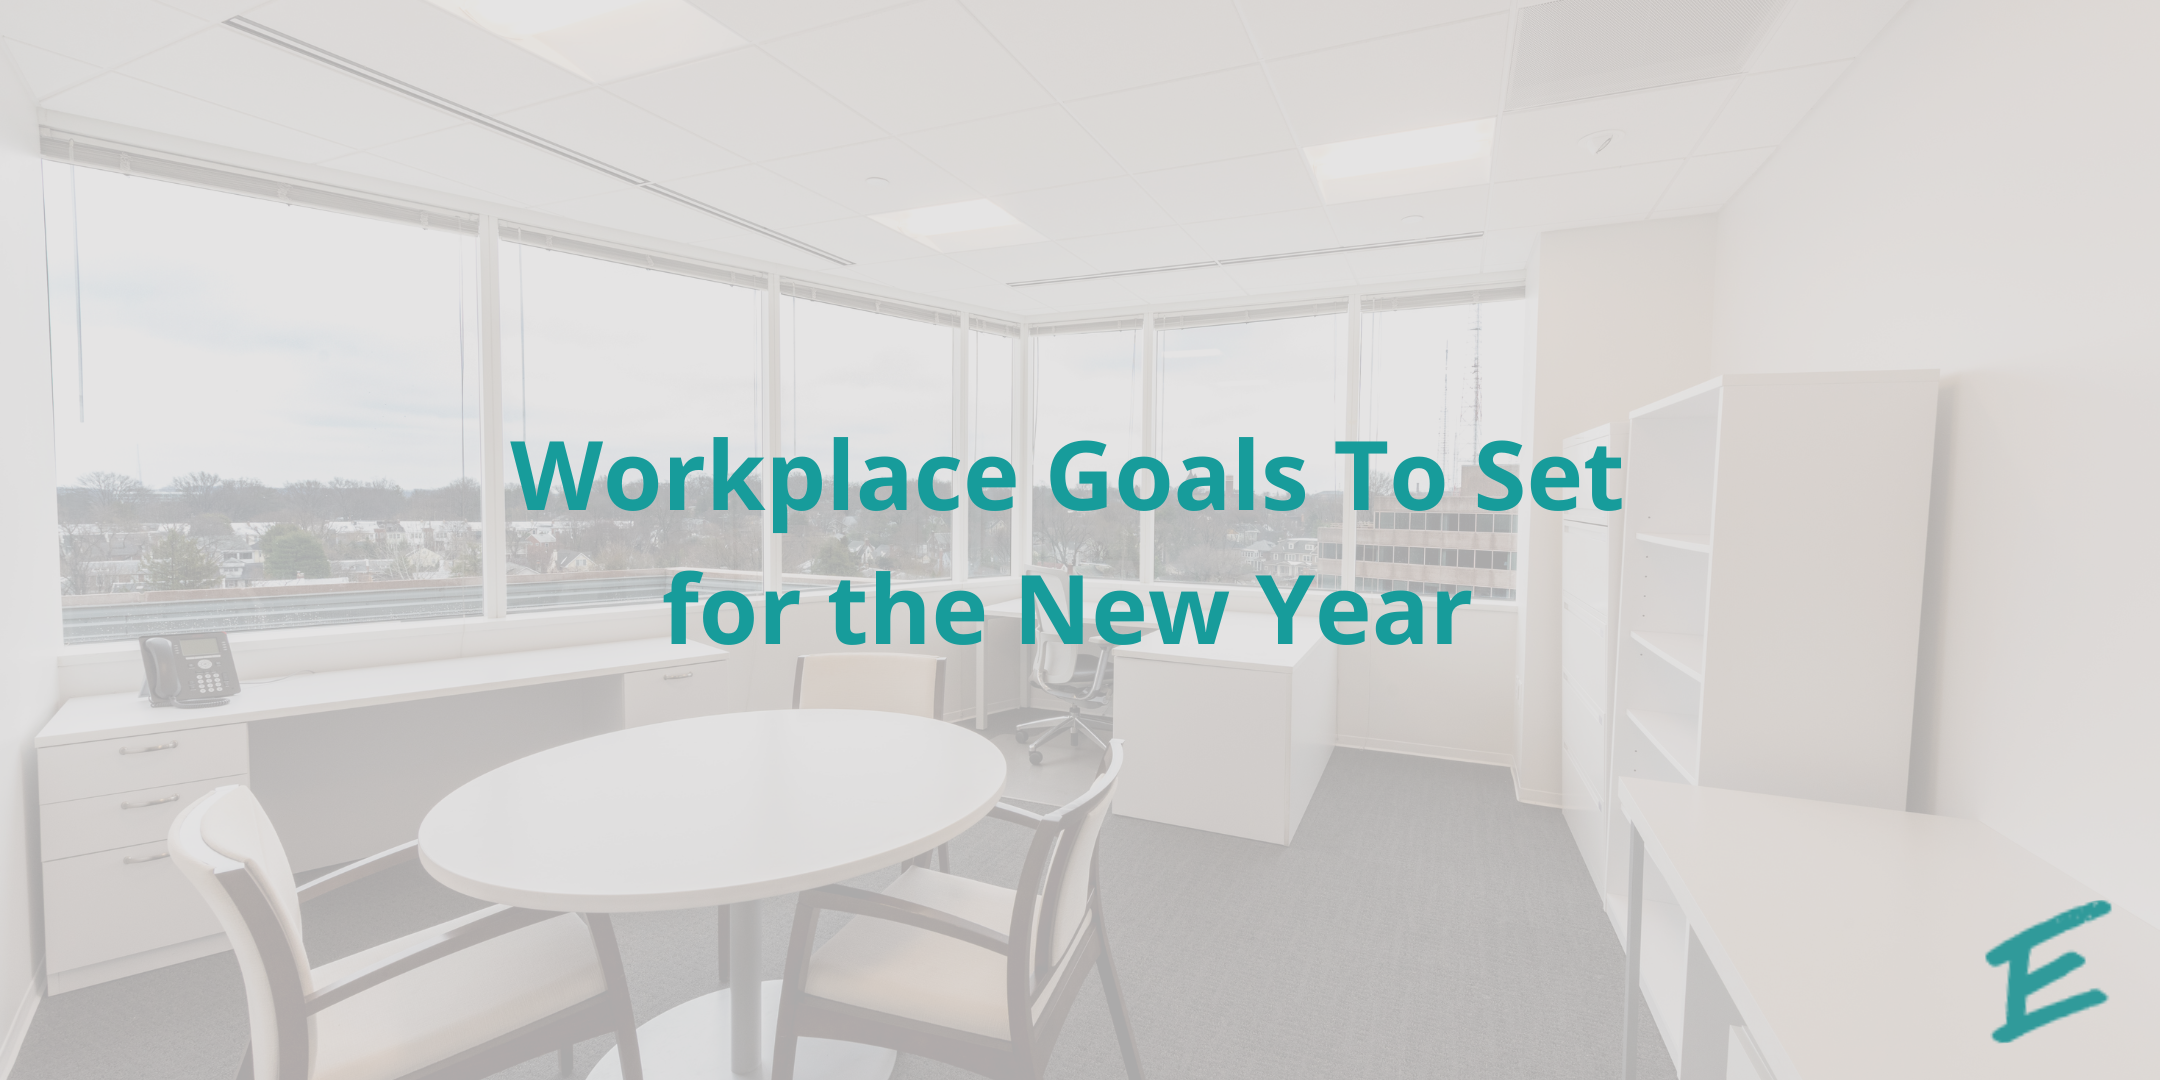 4-workplace-goals-to-set-for-the-new-year (1)